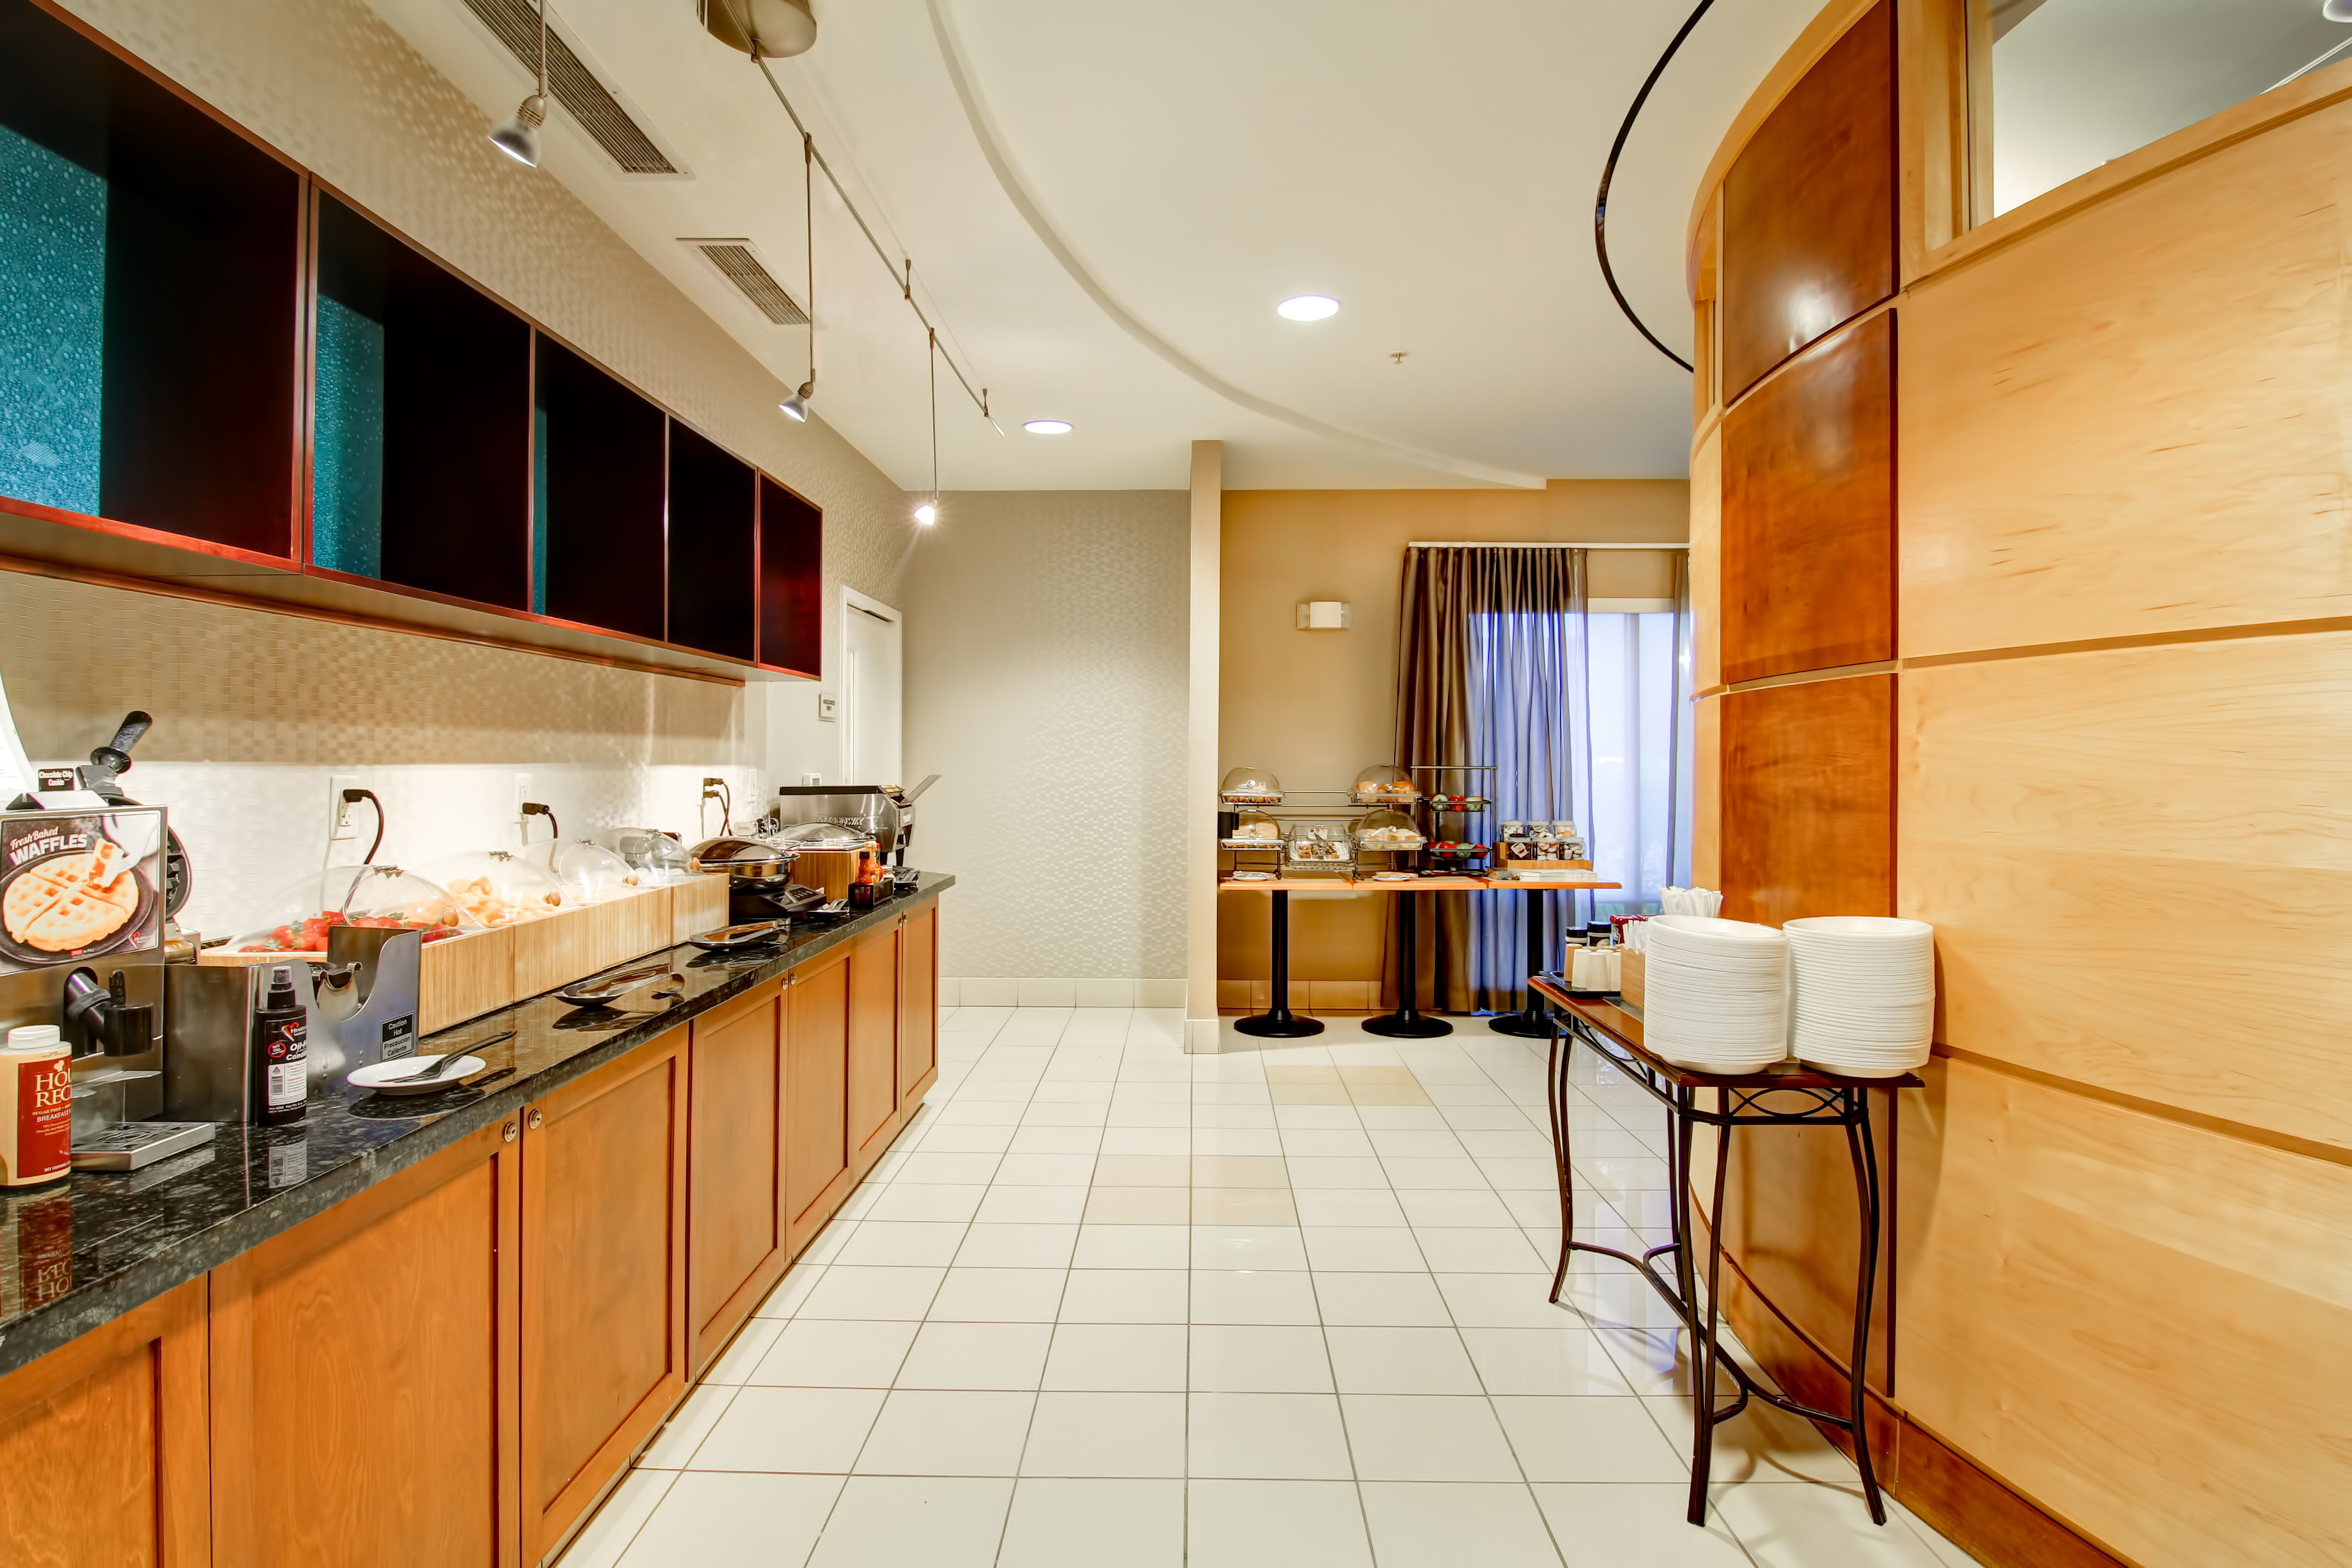 SpringHill Suites by Marriott Erie image 10